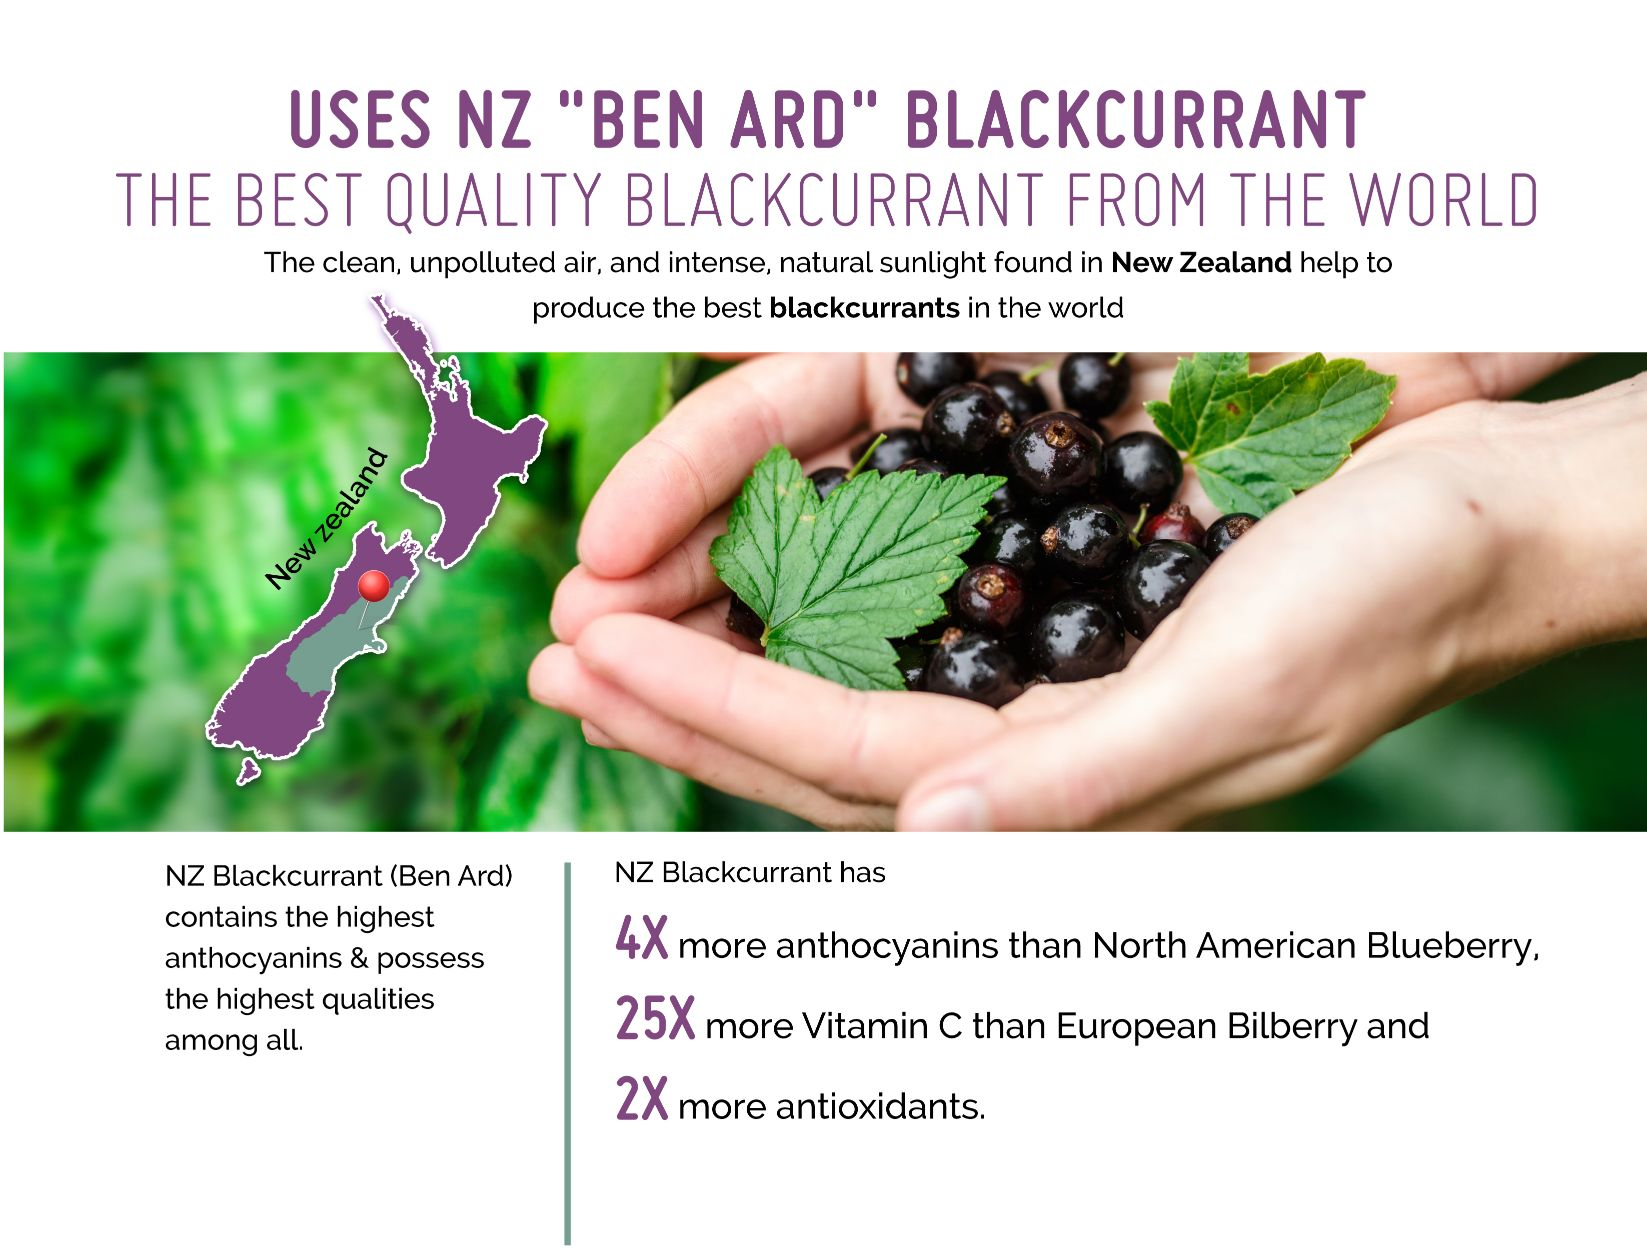 New Zealand Ben Ard Blackcurrant